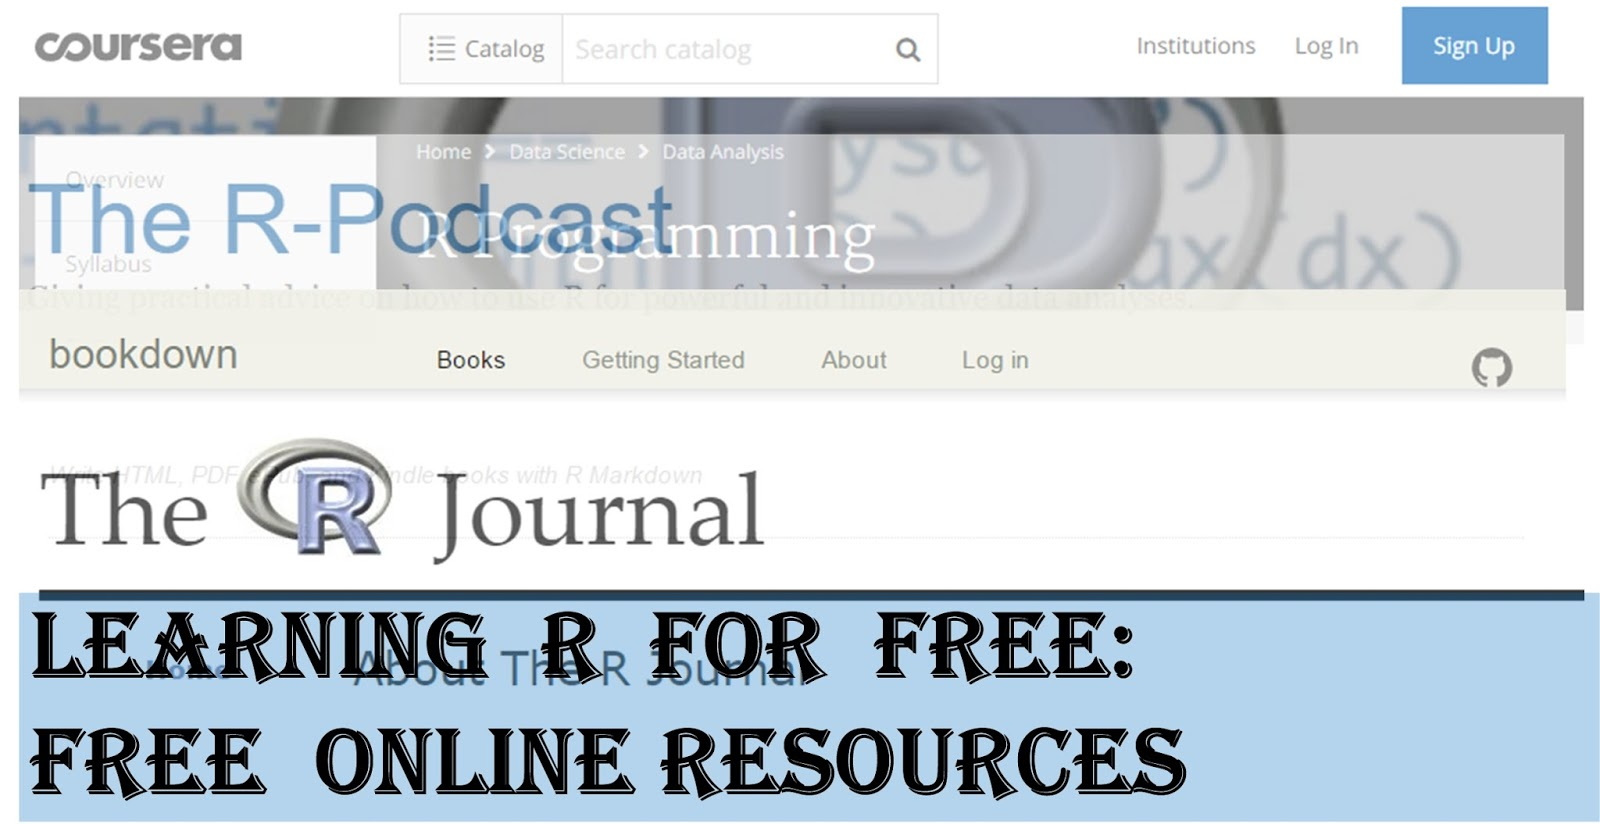 Learning R for FREE: Free online resources | R-bloggers